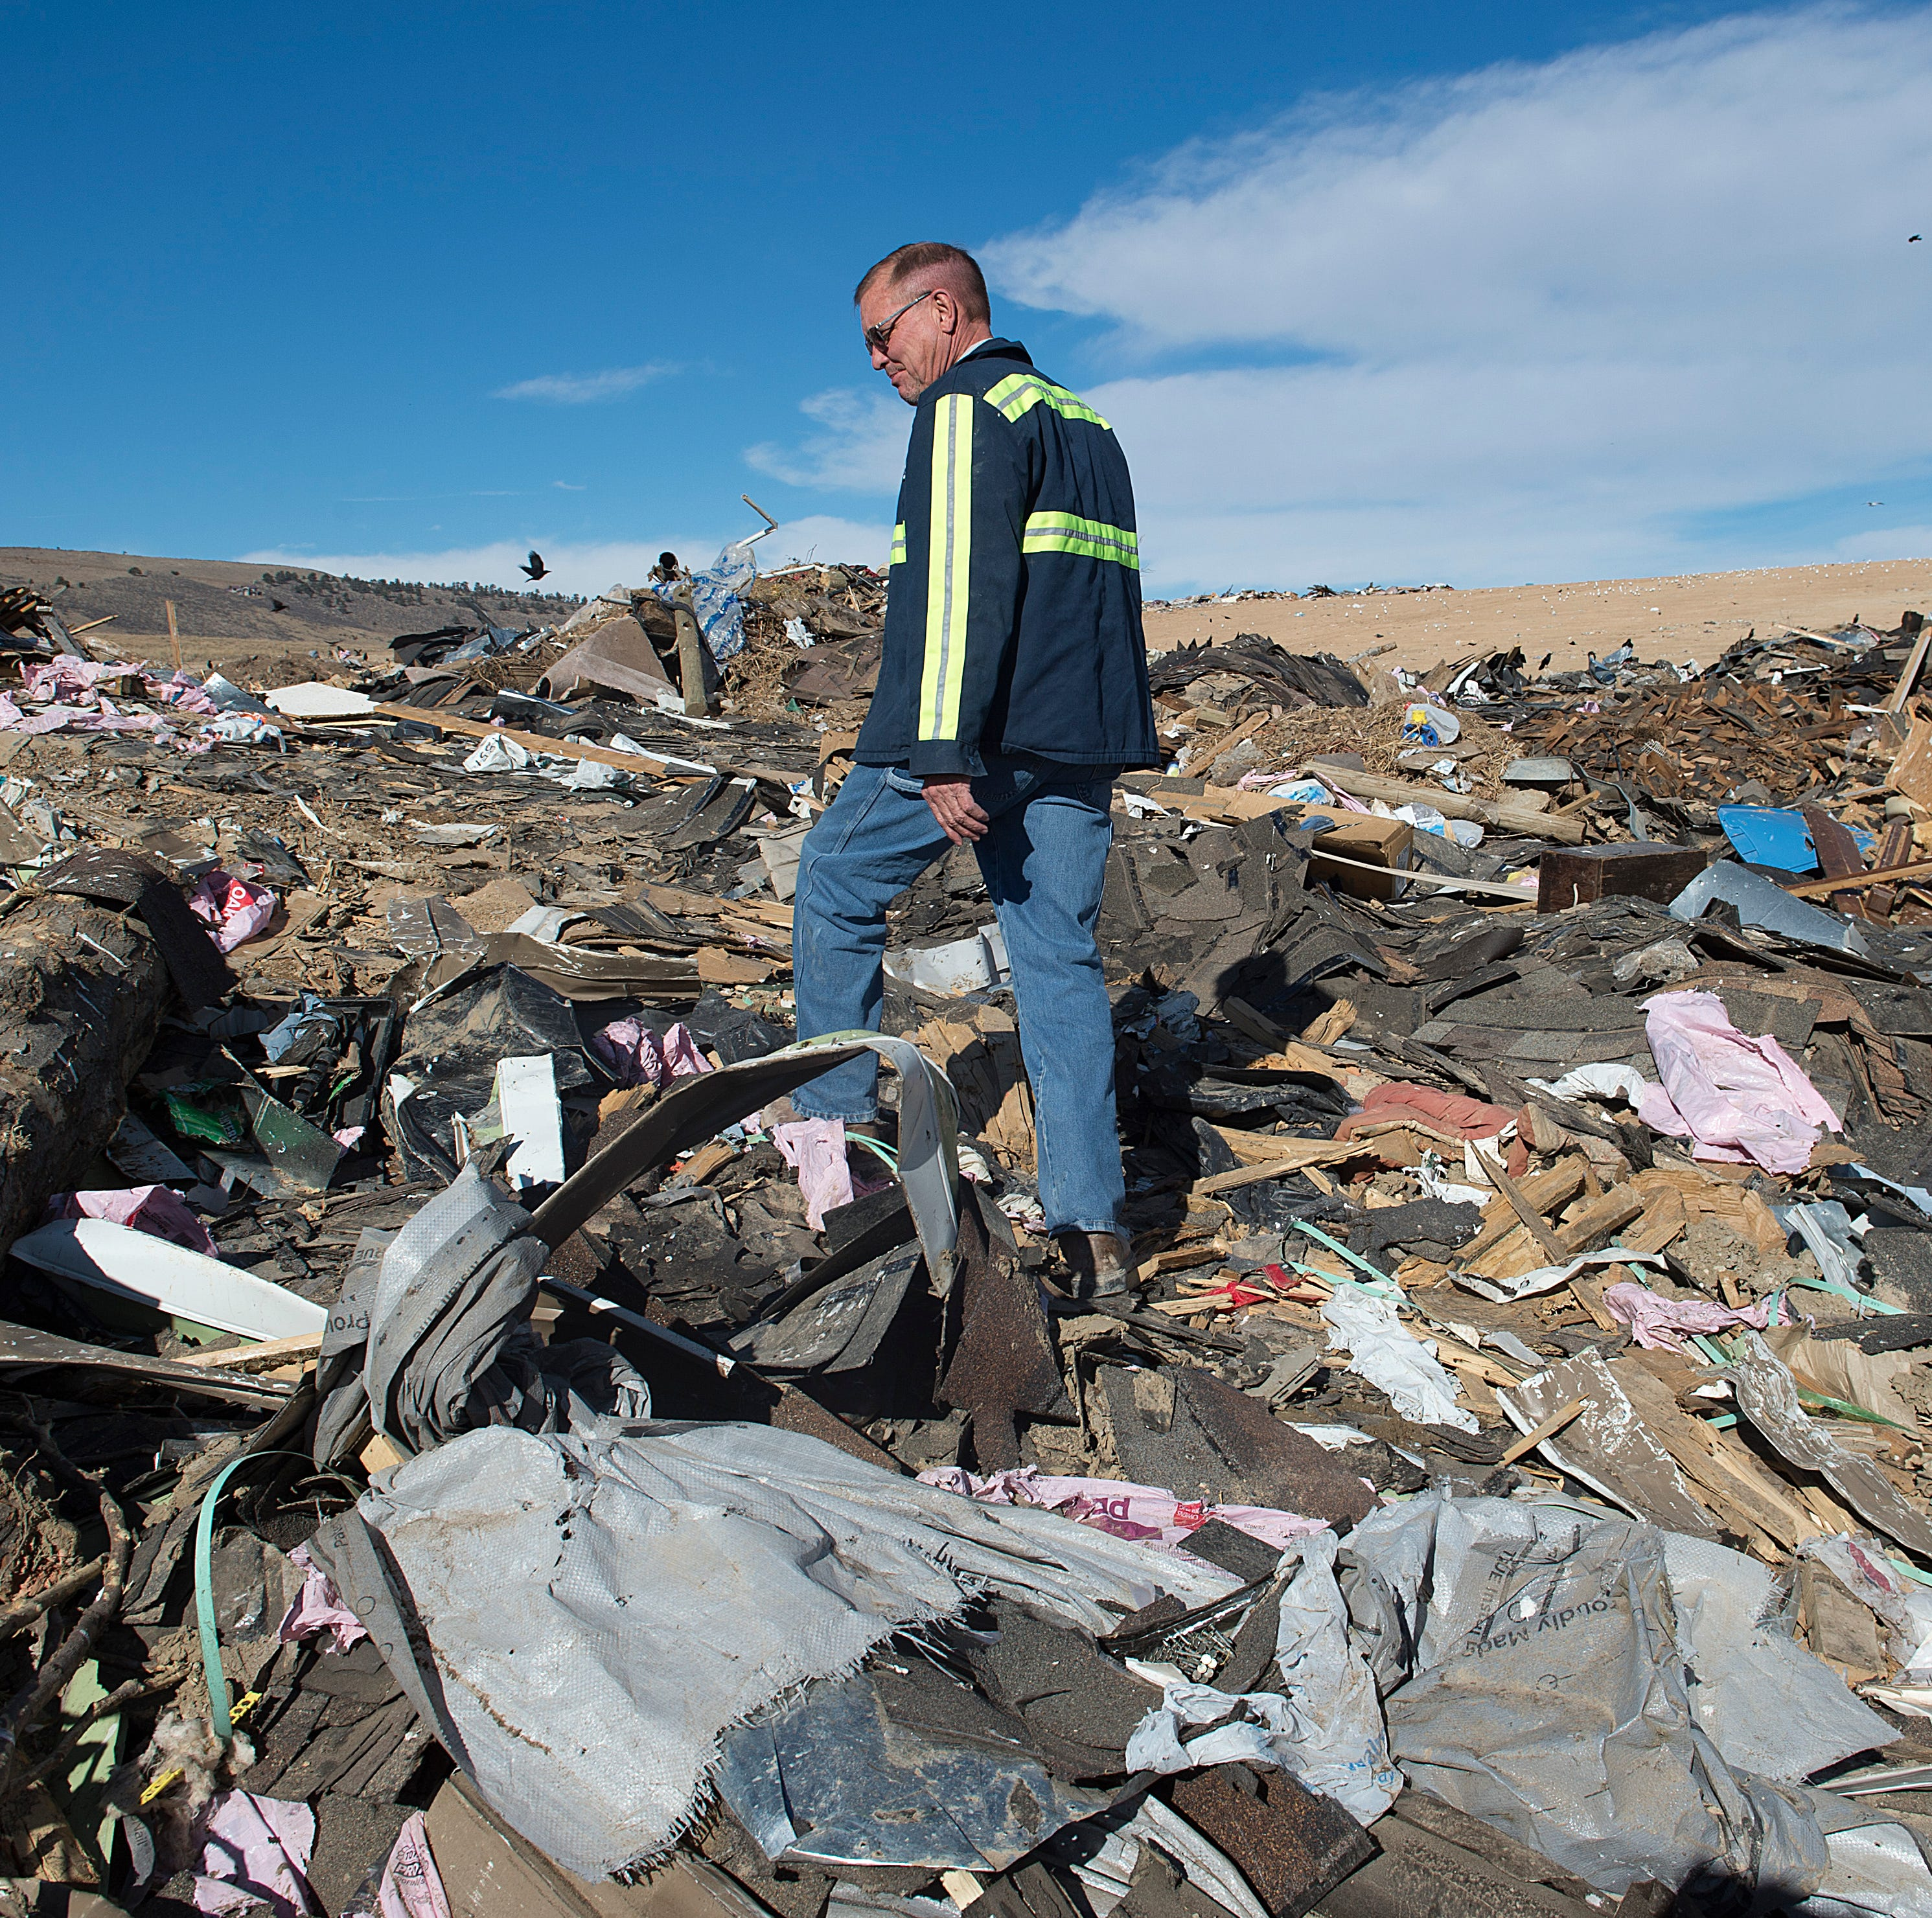 Larimer County's new landfill, recycling and composting sites will change your trash habits